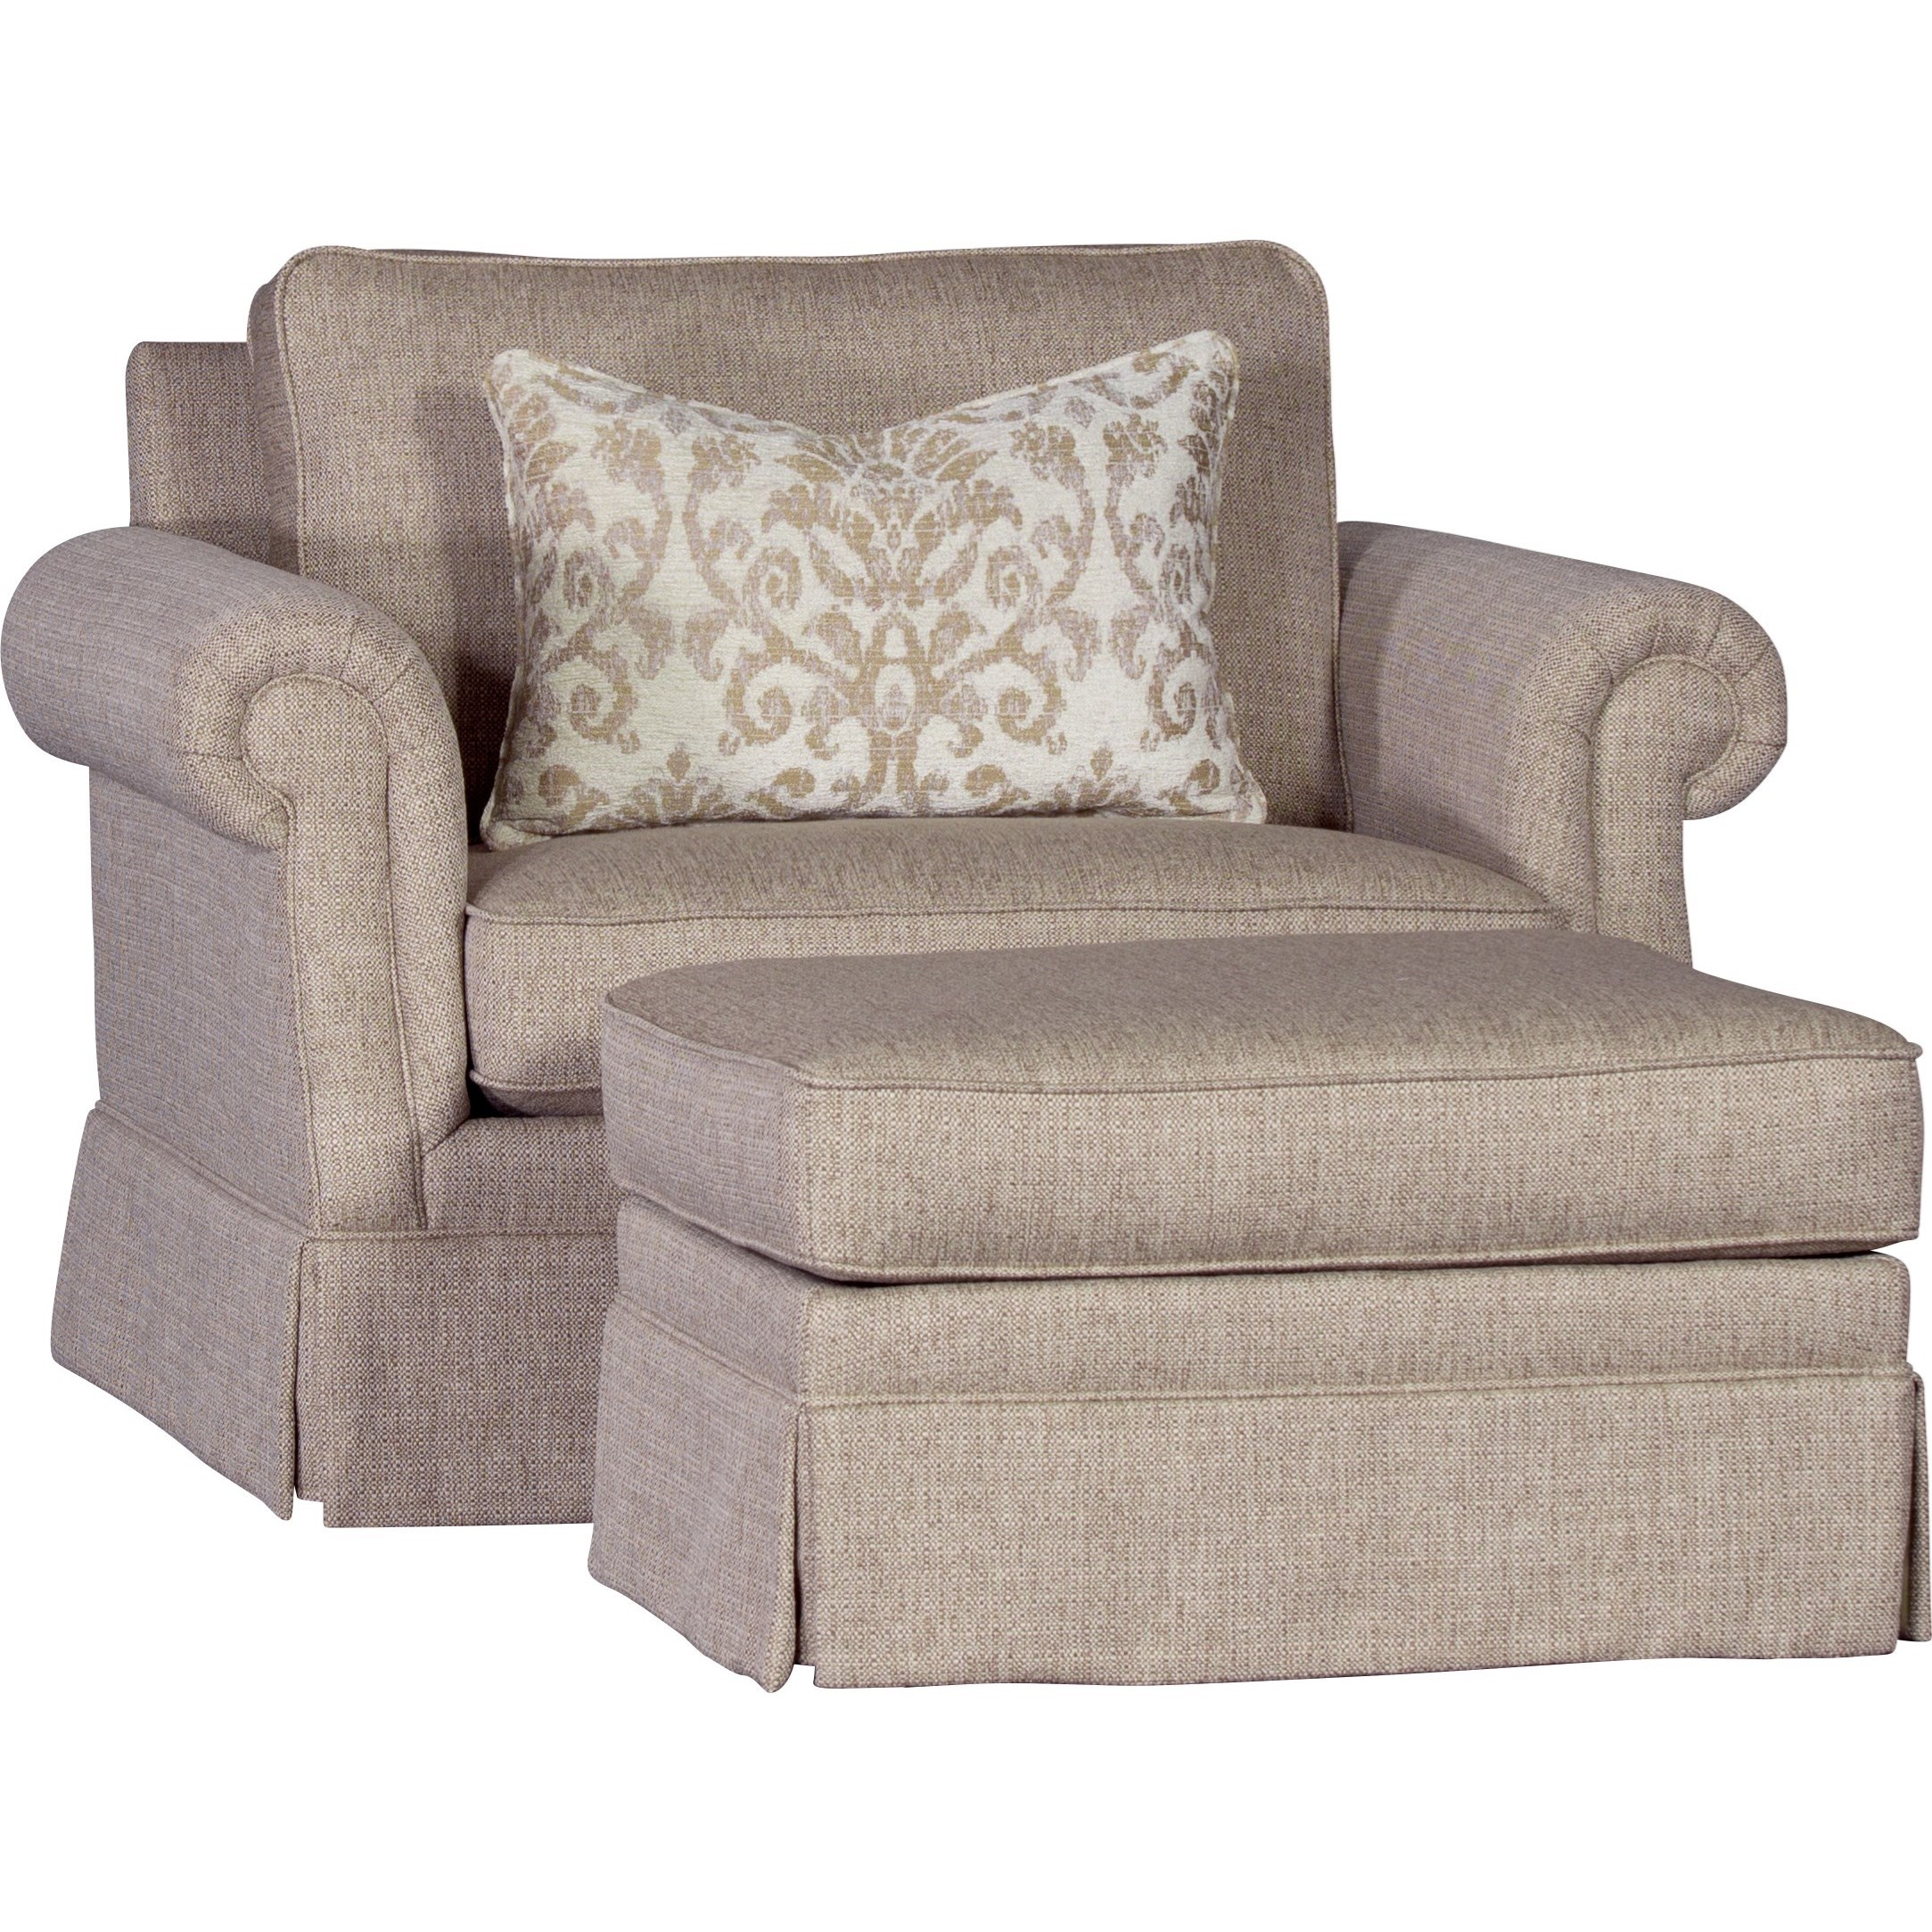 2600 Chair and Ottoman by Mayo at Wilcox Furniture